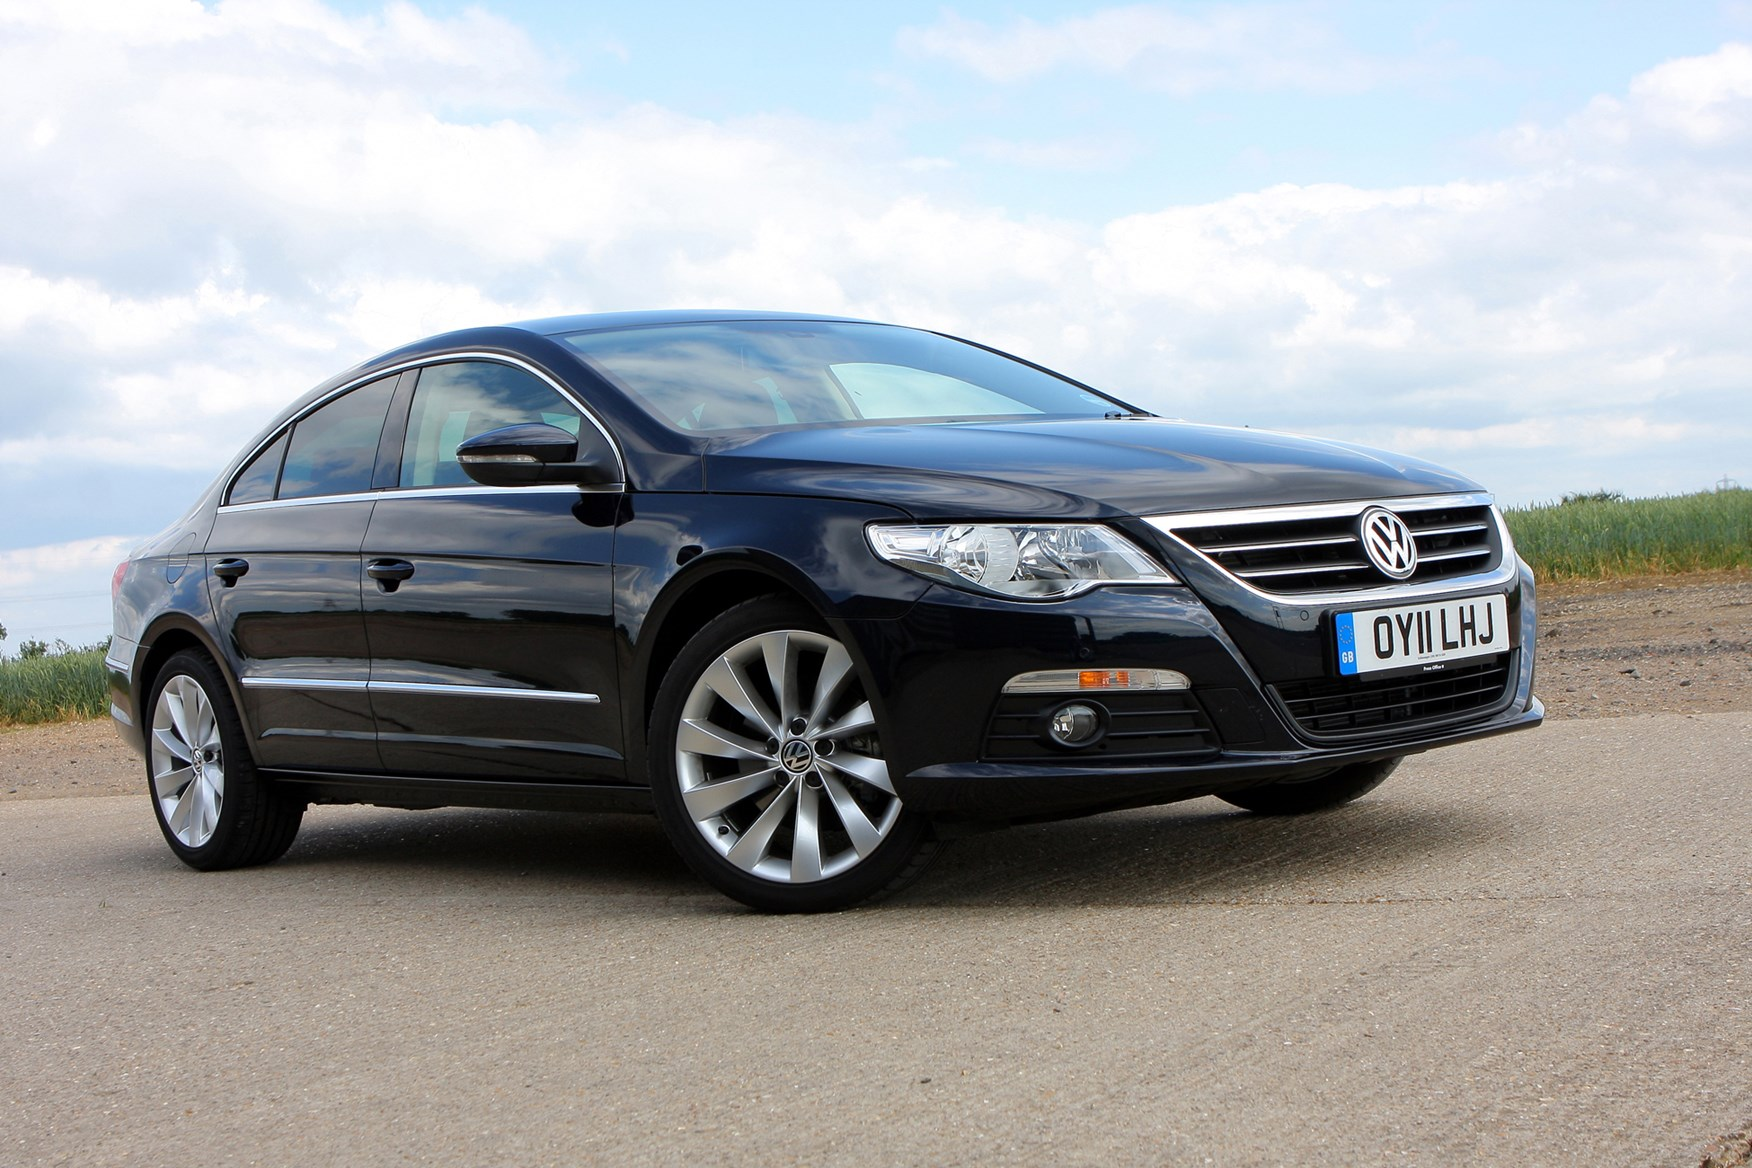 New Volkswagen Passat Car Information Singapore  sgCarMart